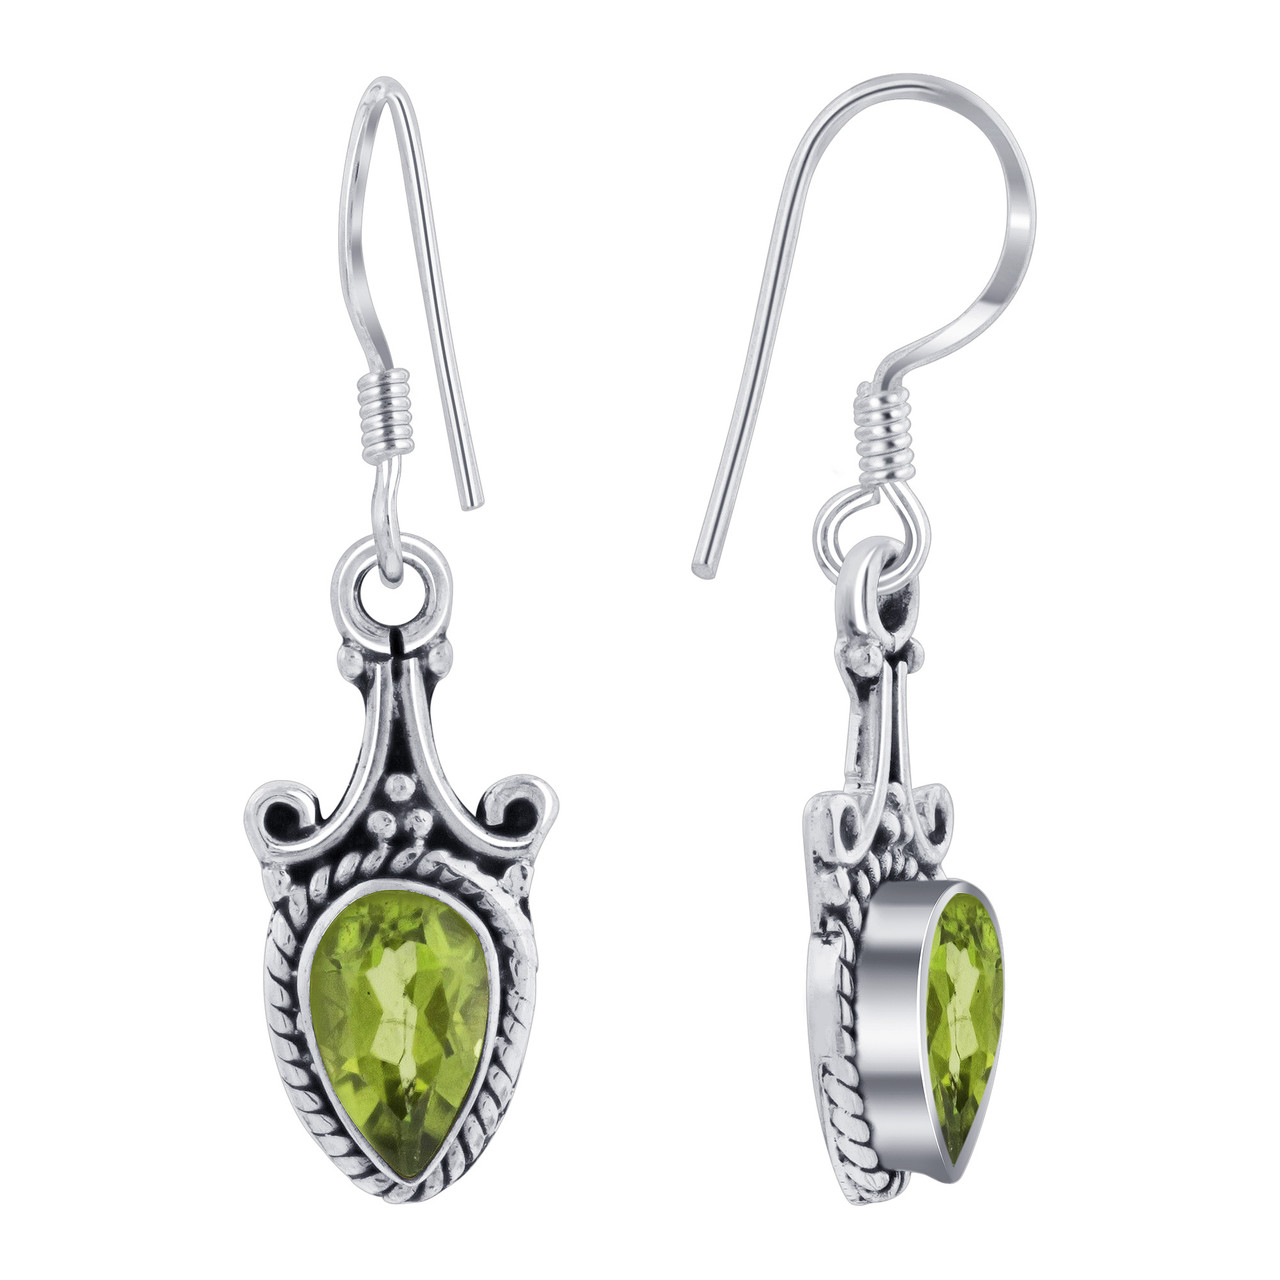 925 Sterling Silver Pear Shape Drop Earrings